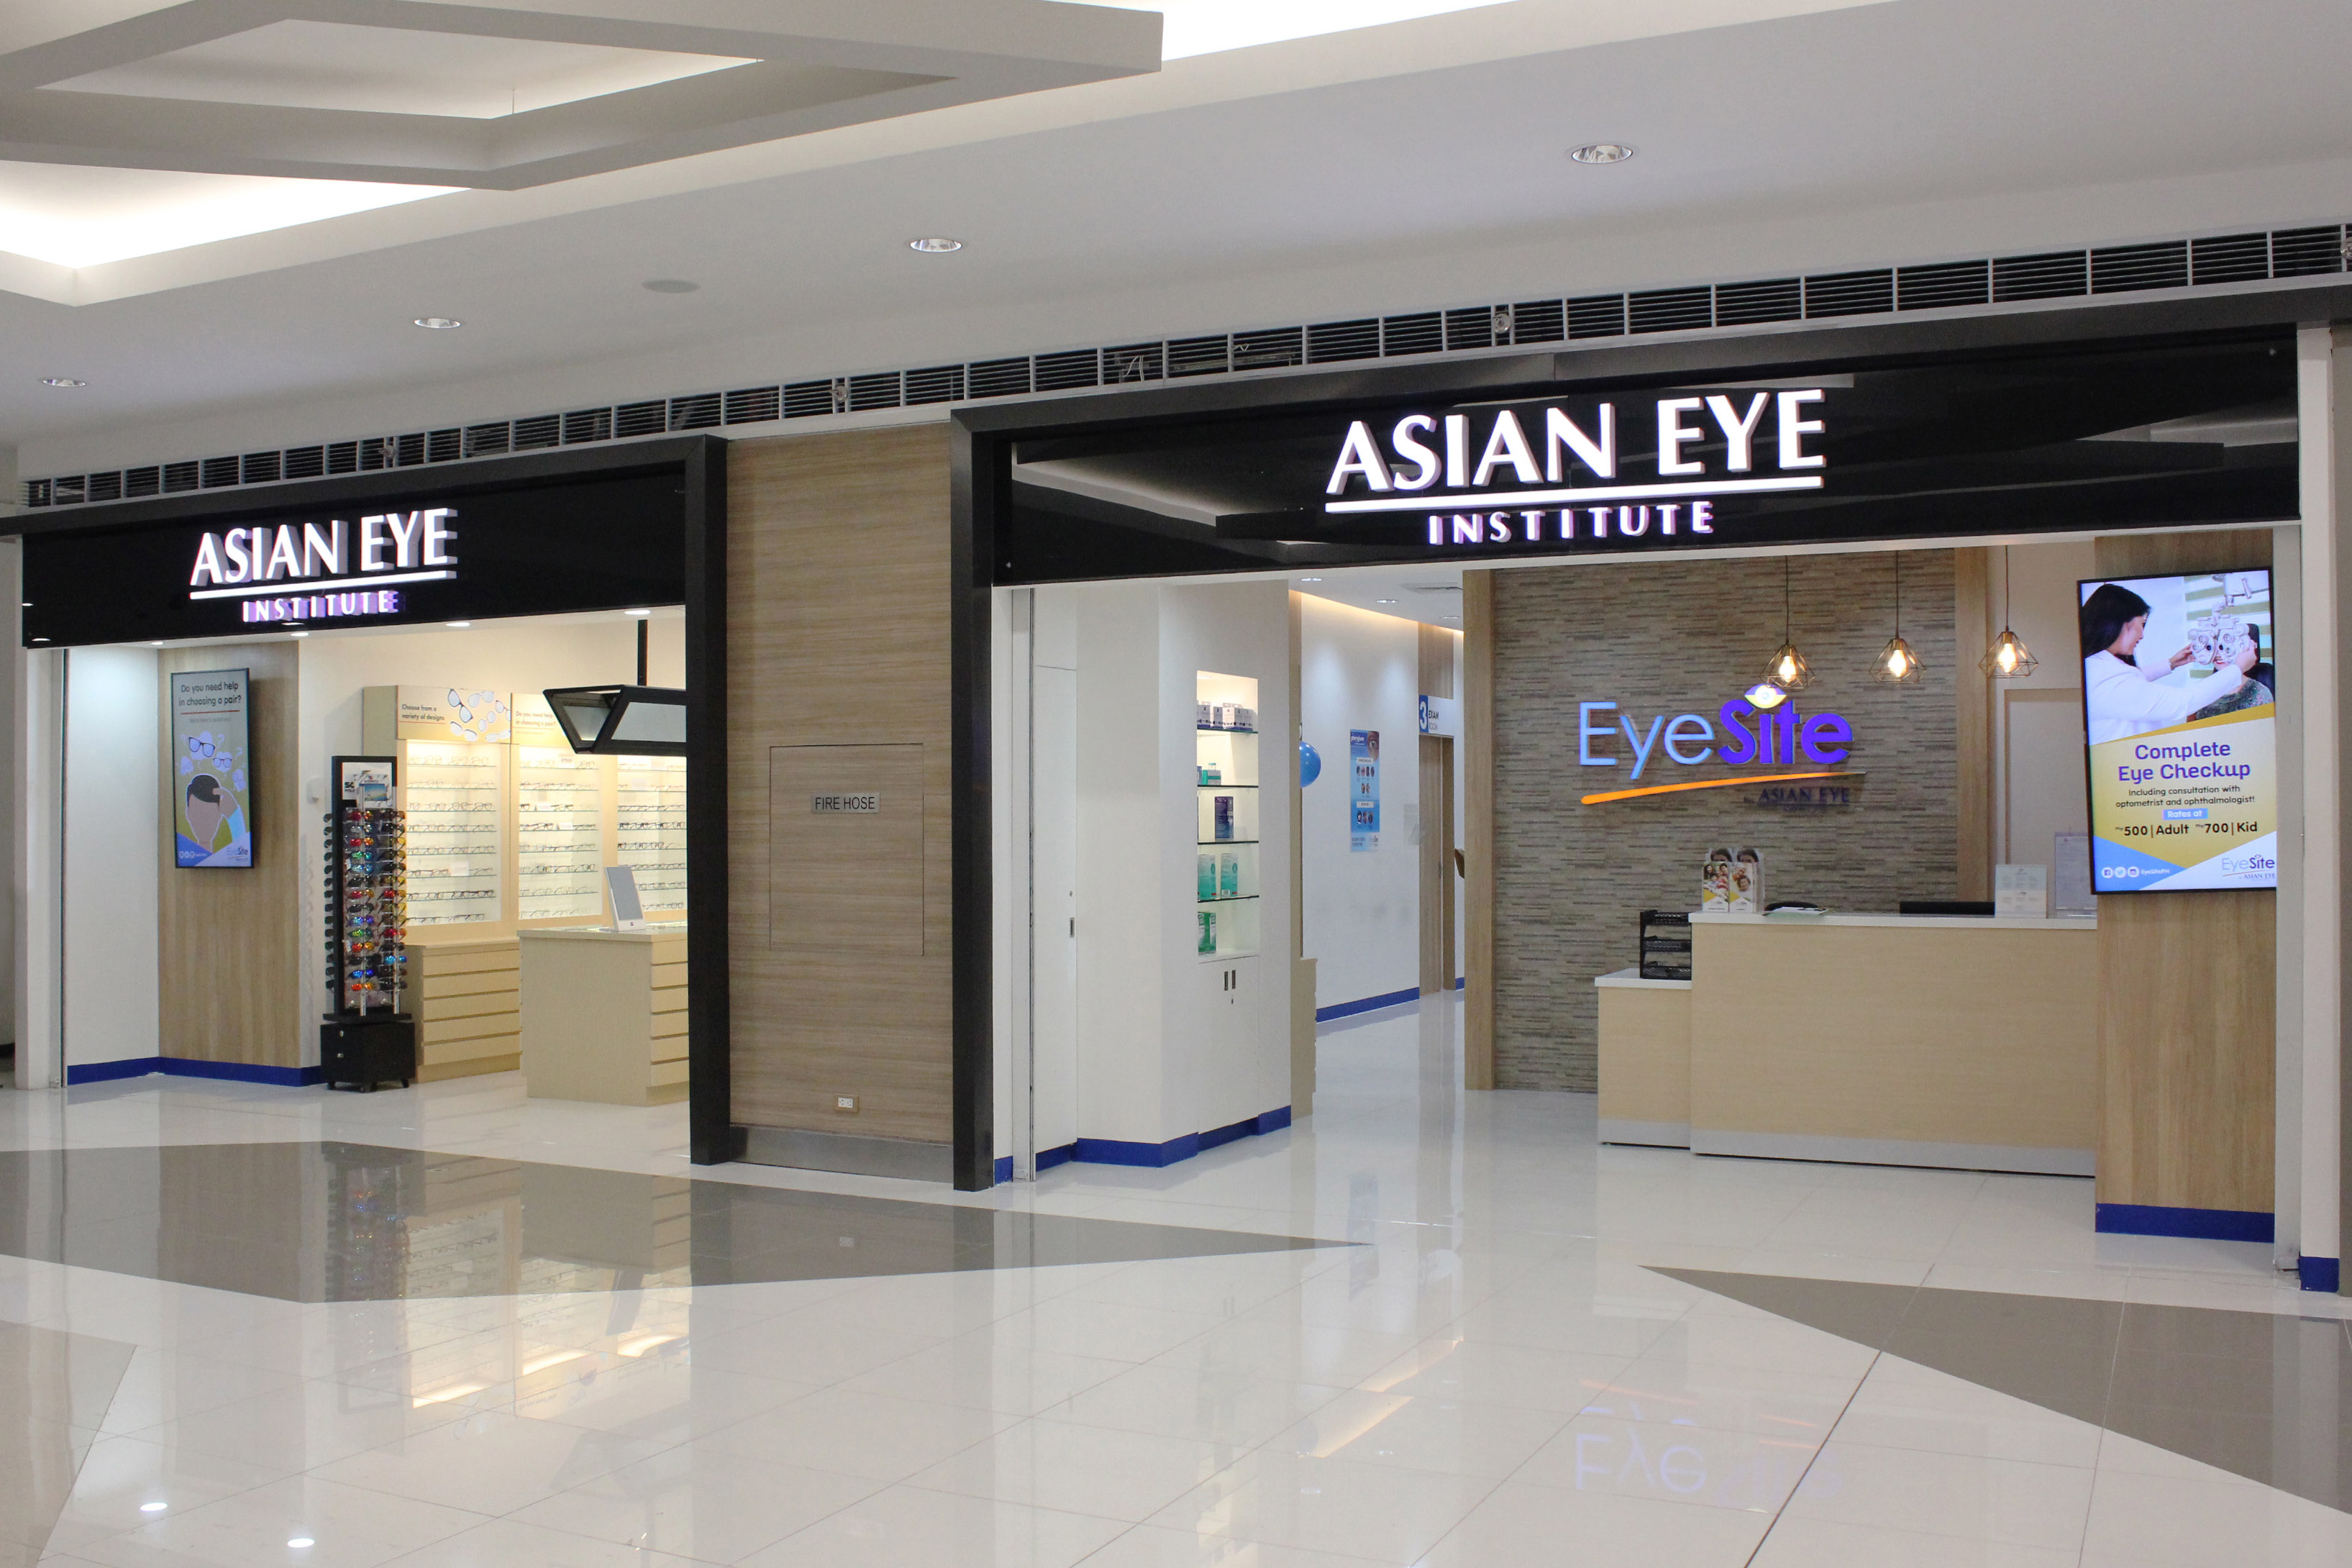 EyeSite SM Fairview is Asian Eye's first such facility in Metro Manila